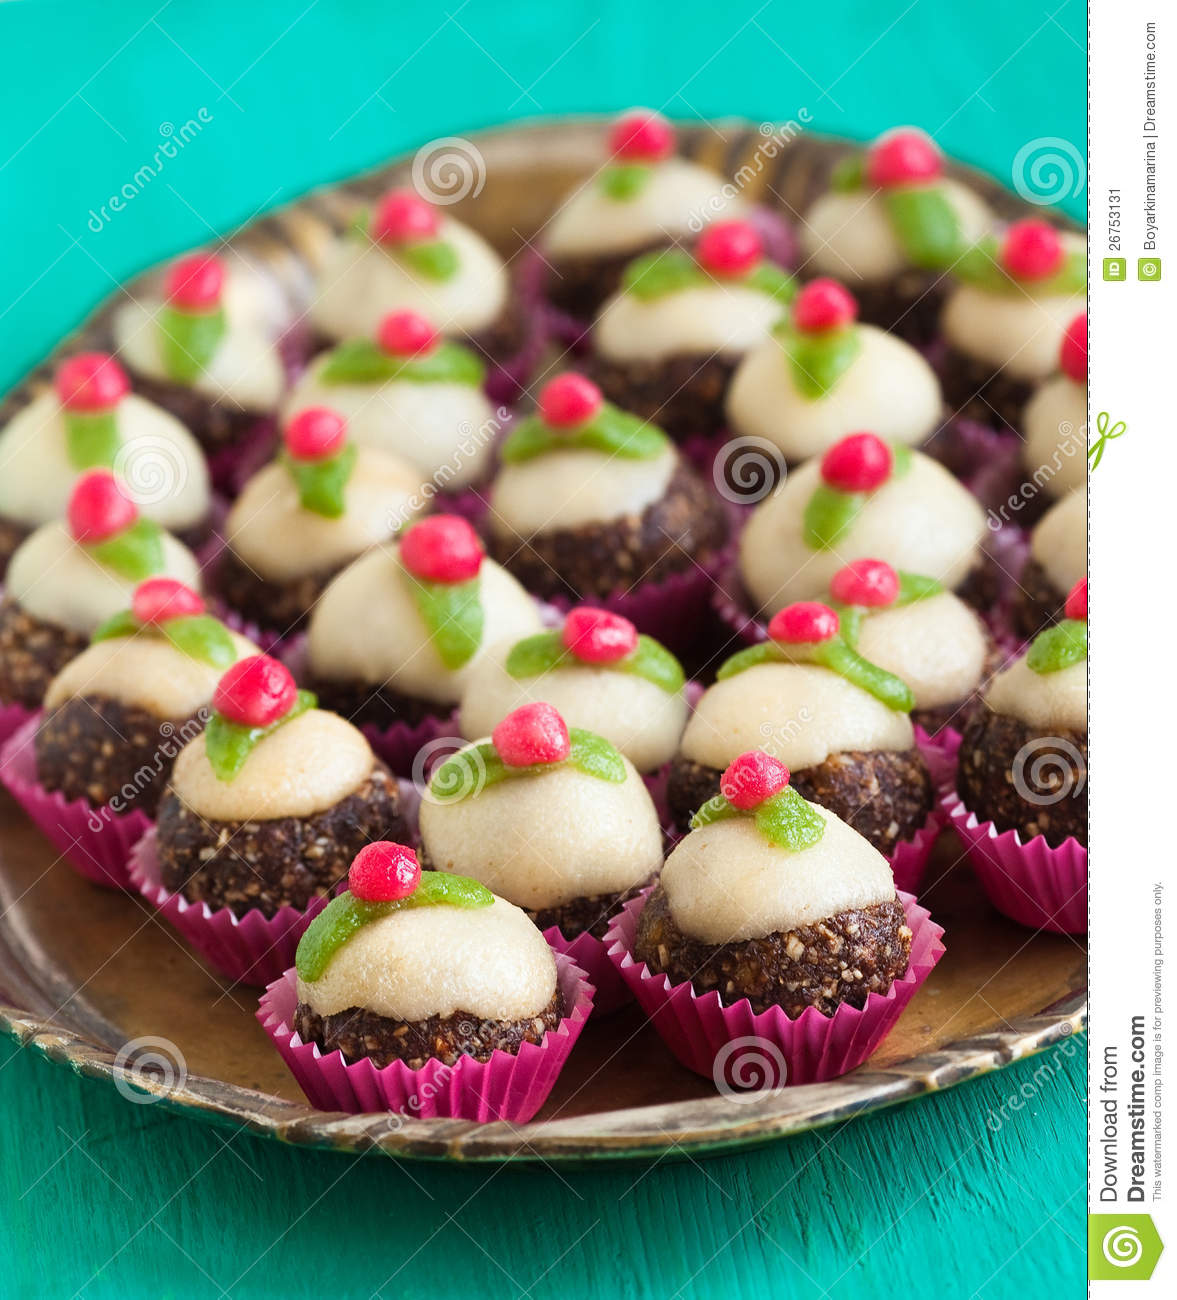 Homemade Sweets With Marzipan Stock Image.